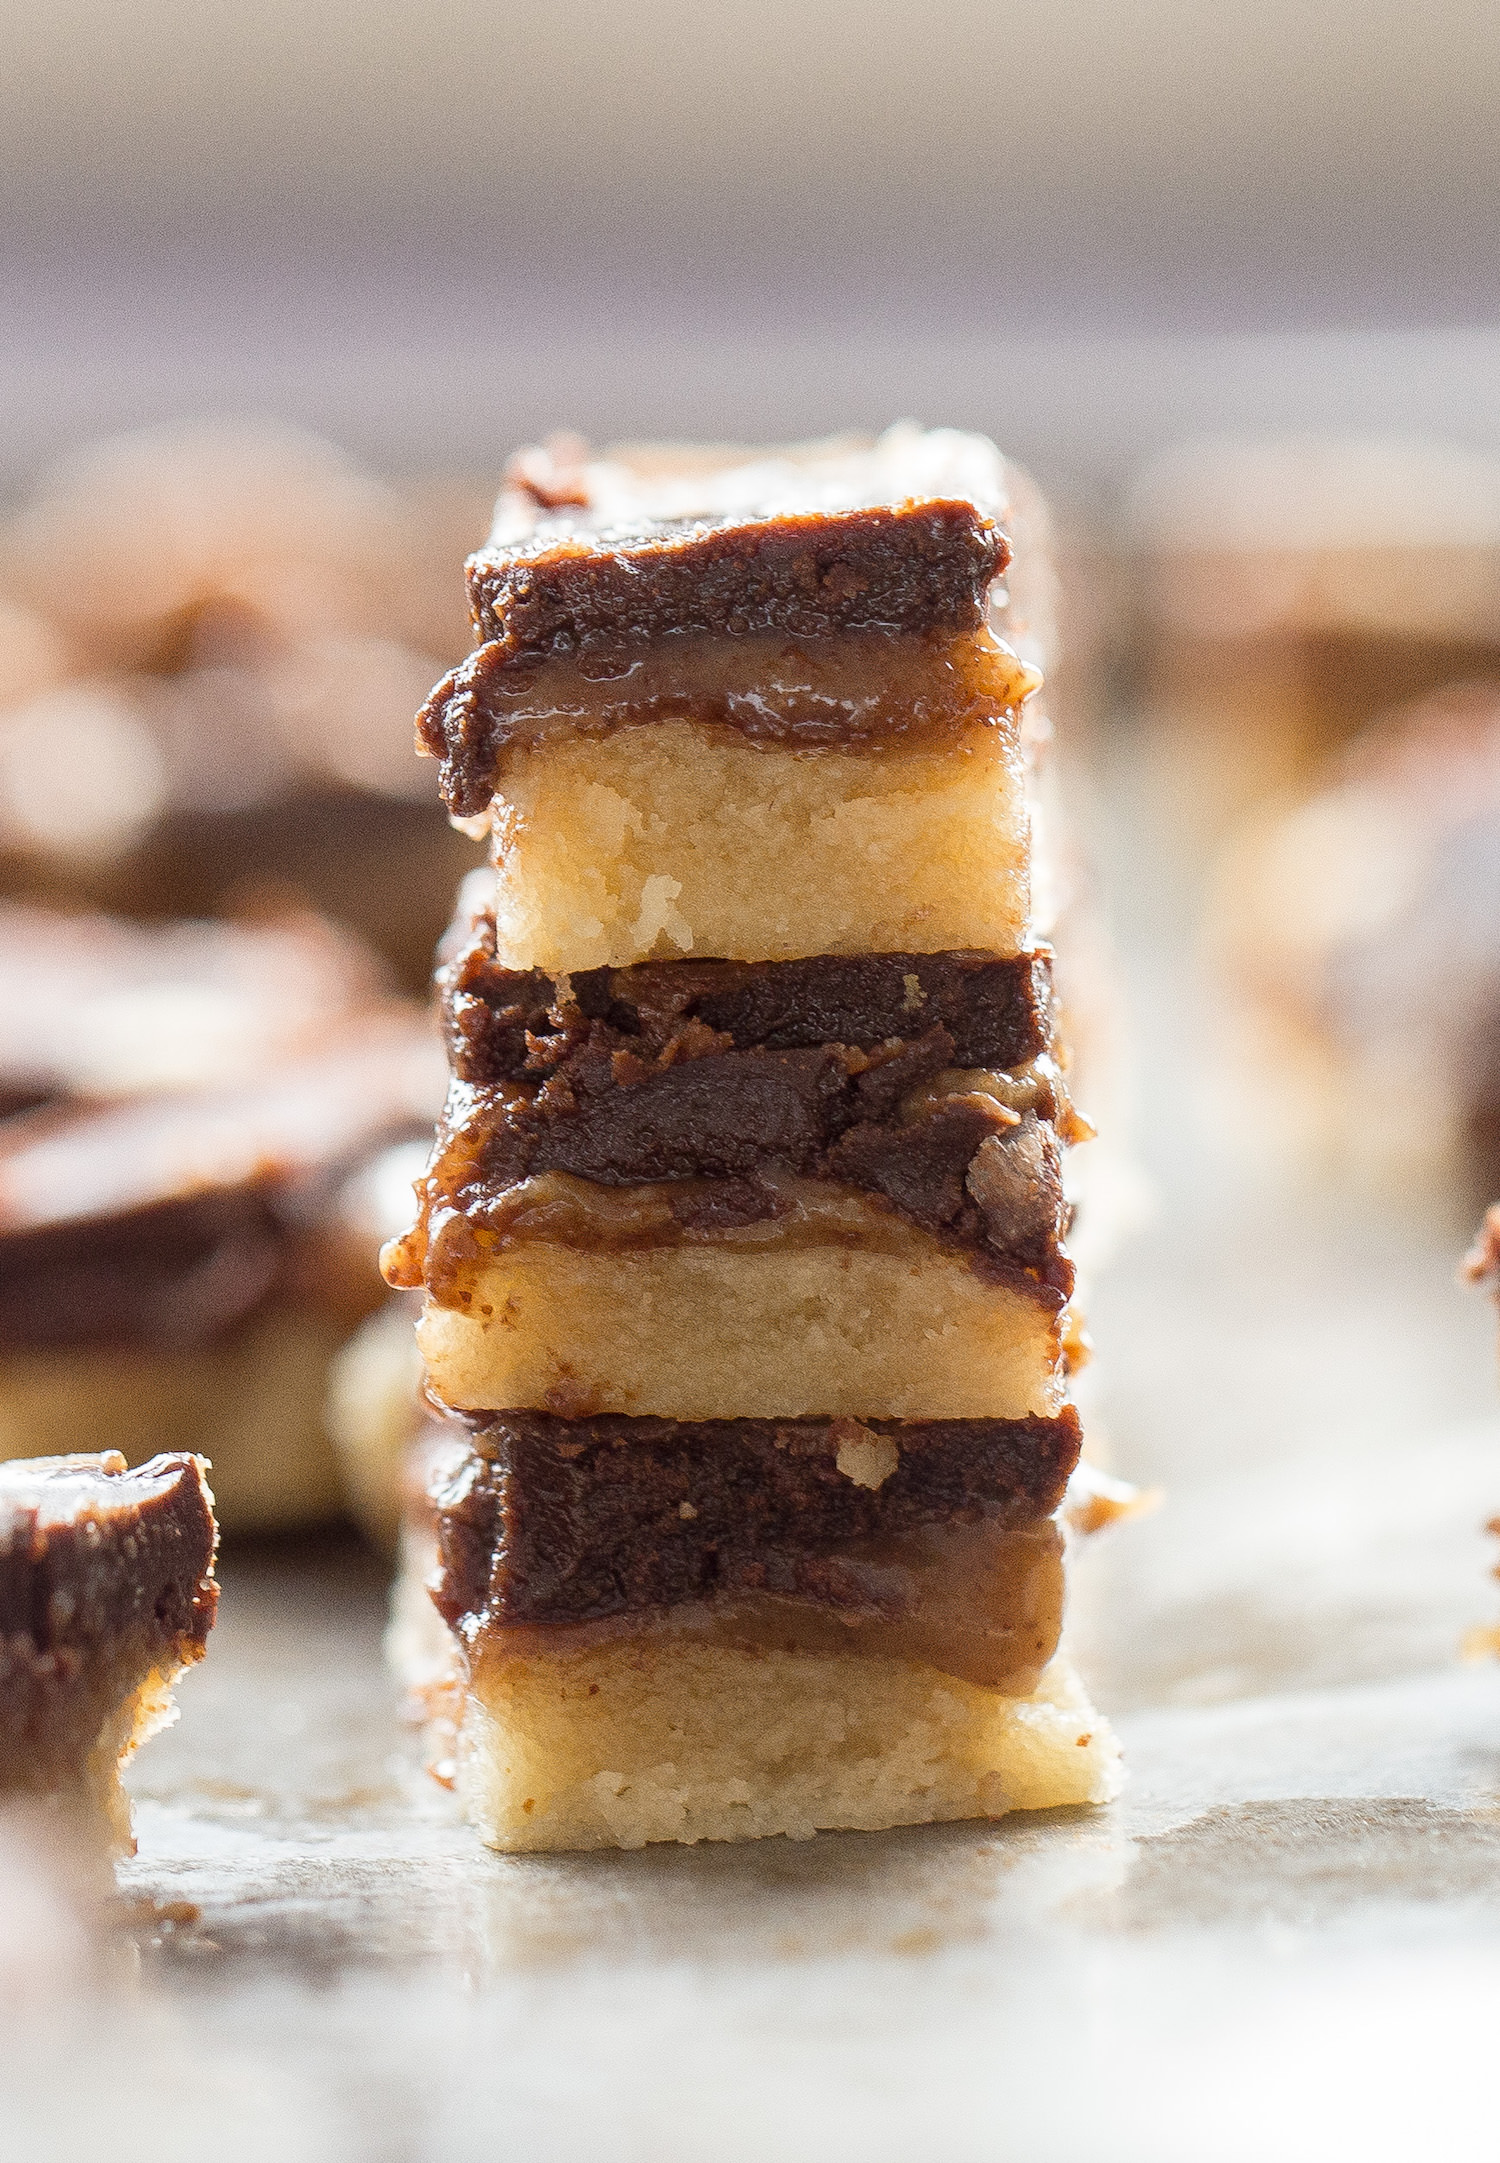 Wholesome Caramel Chocolate Shortbread Bars | TrufflesandTrends.com